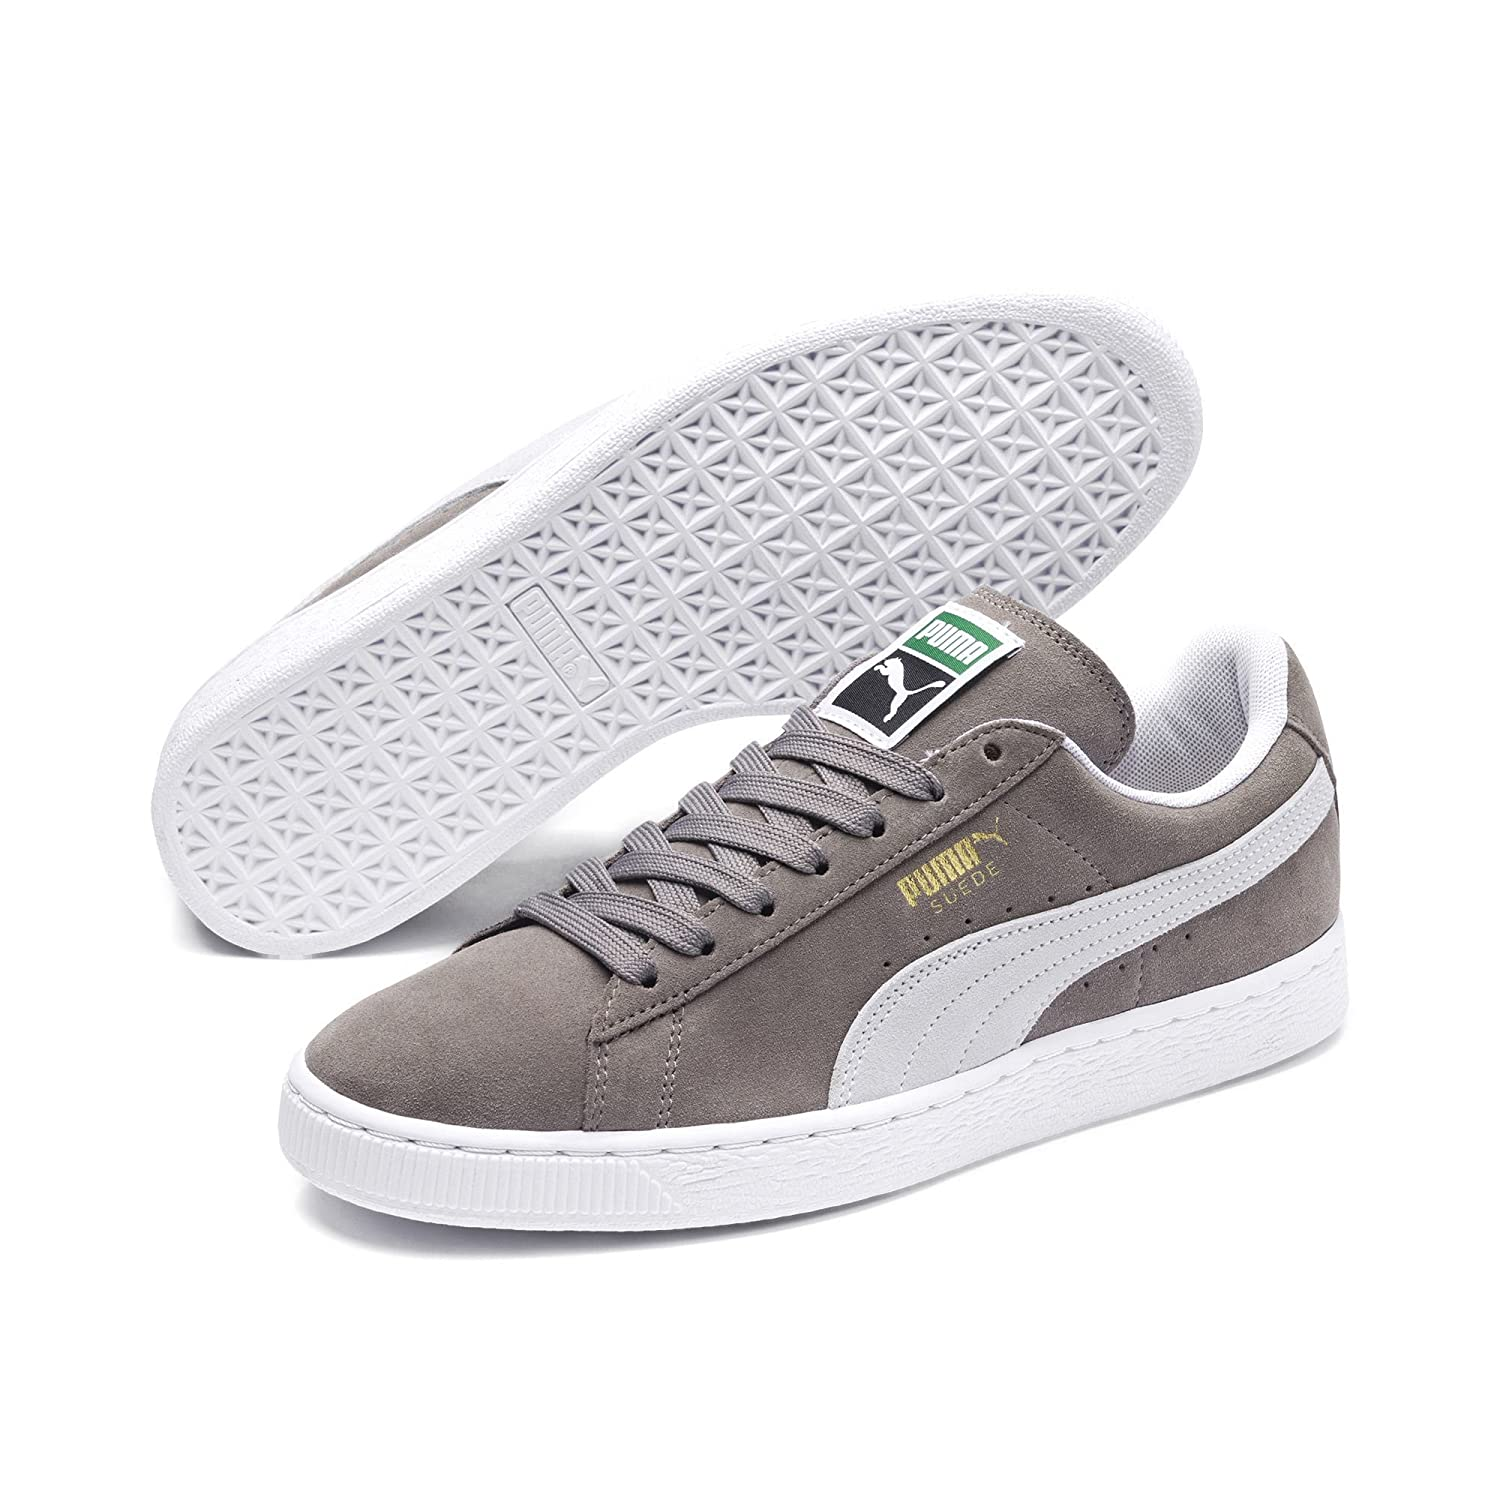 Sneakers Puma ClassicLow Suede Unisex Top Adults' P8kOnw0